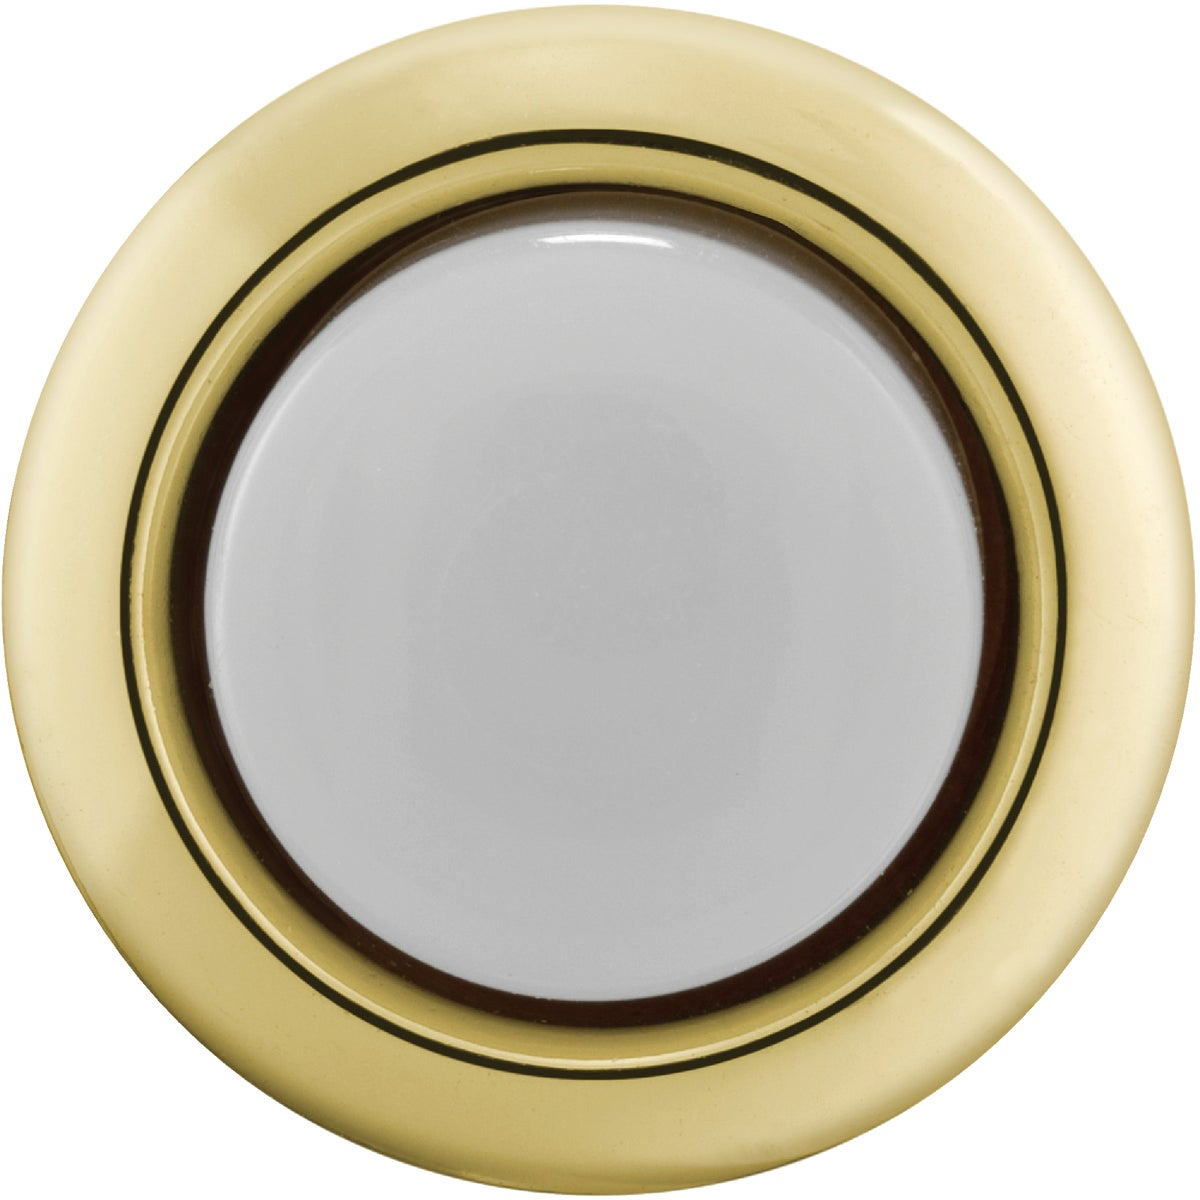 GOLD LIGHTED PUSH-BUTTON